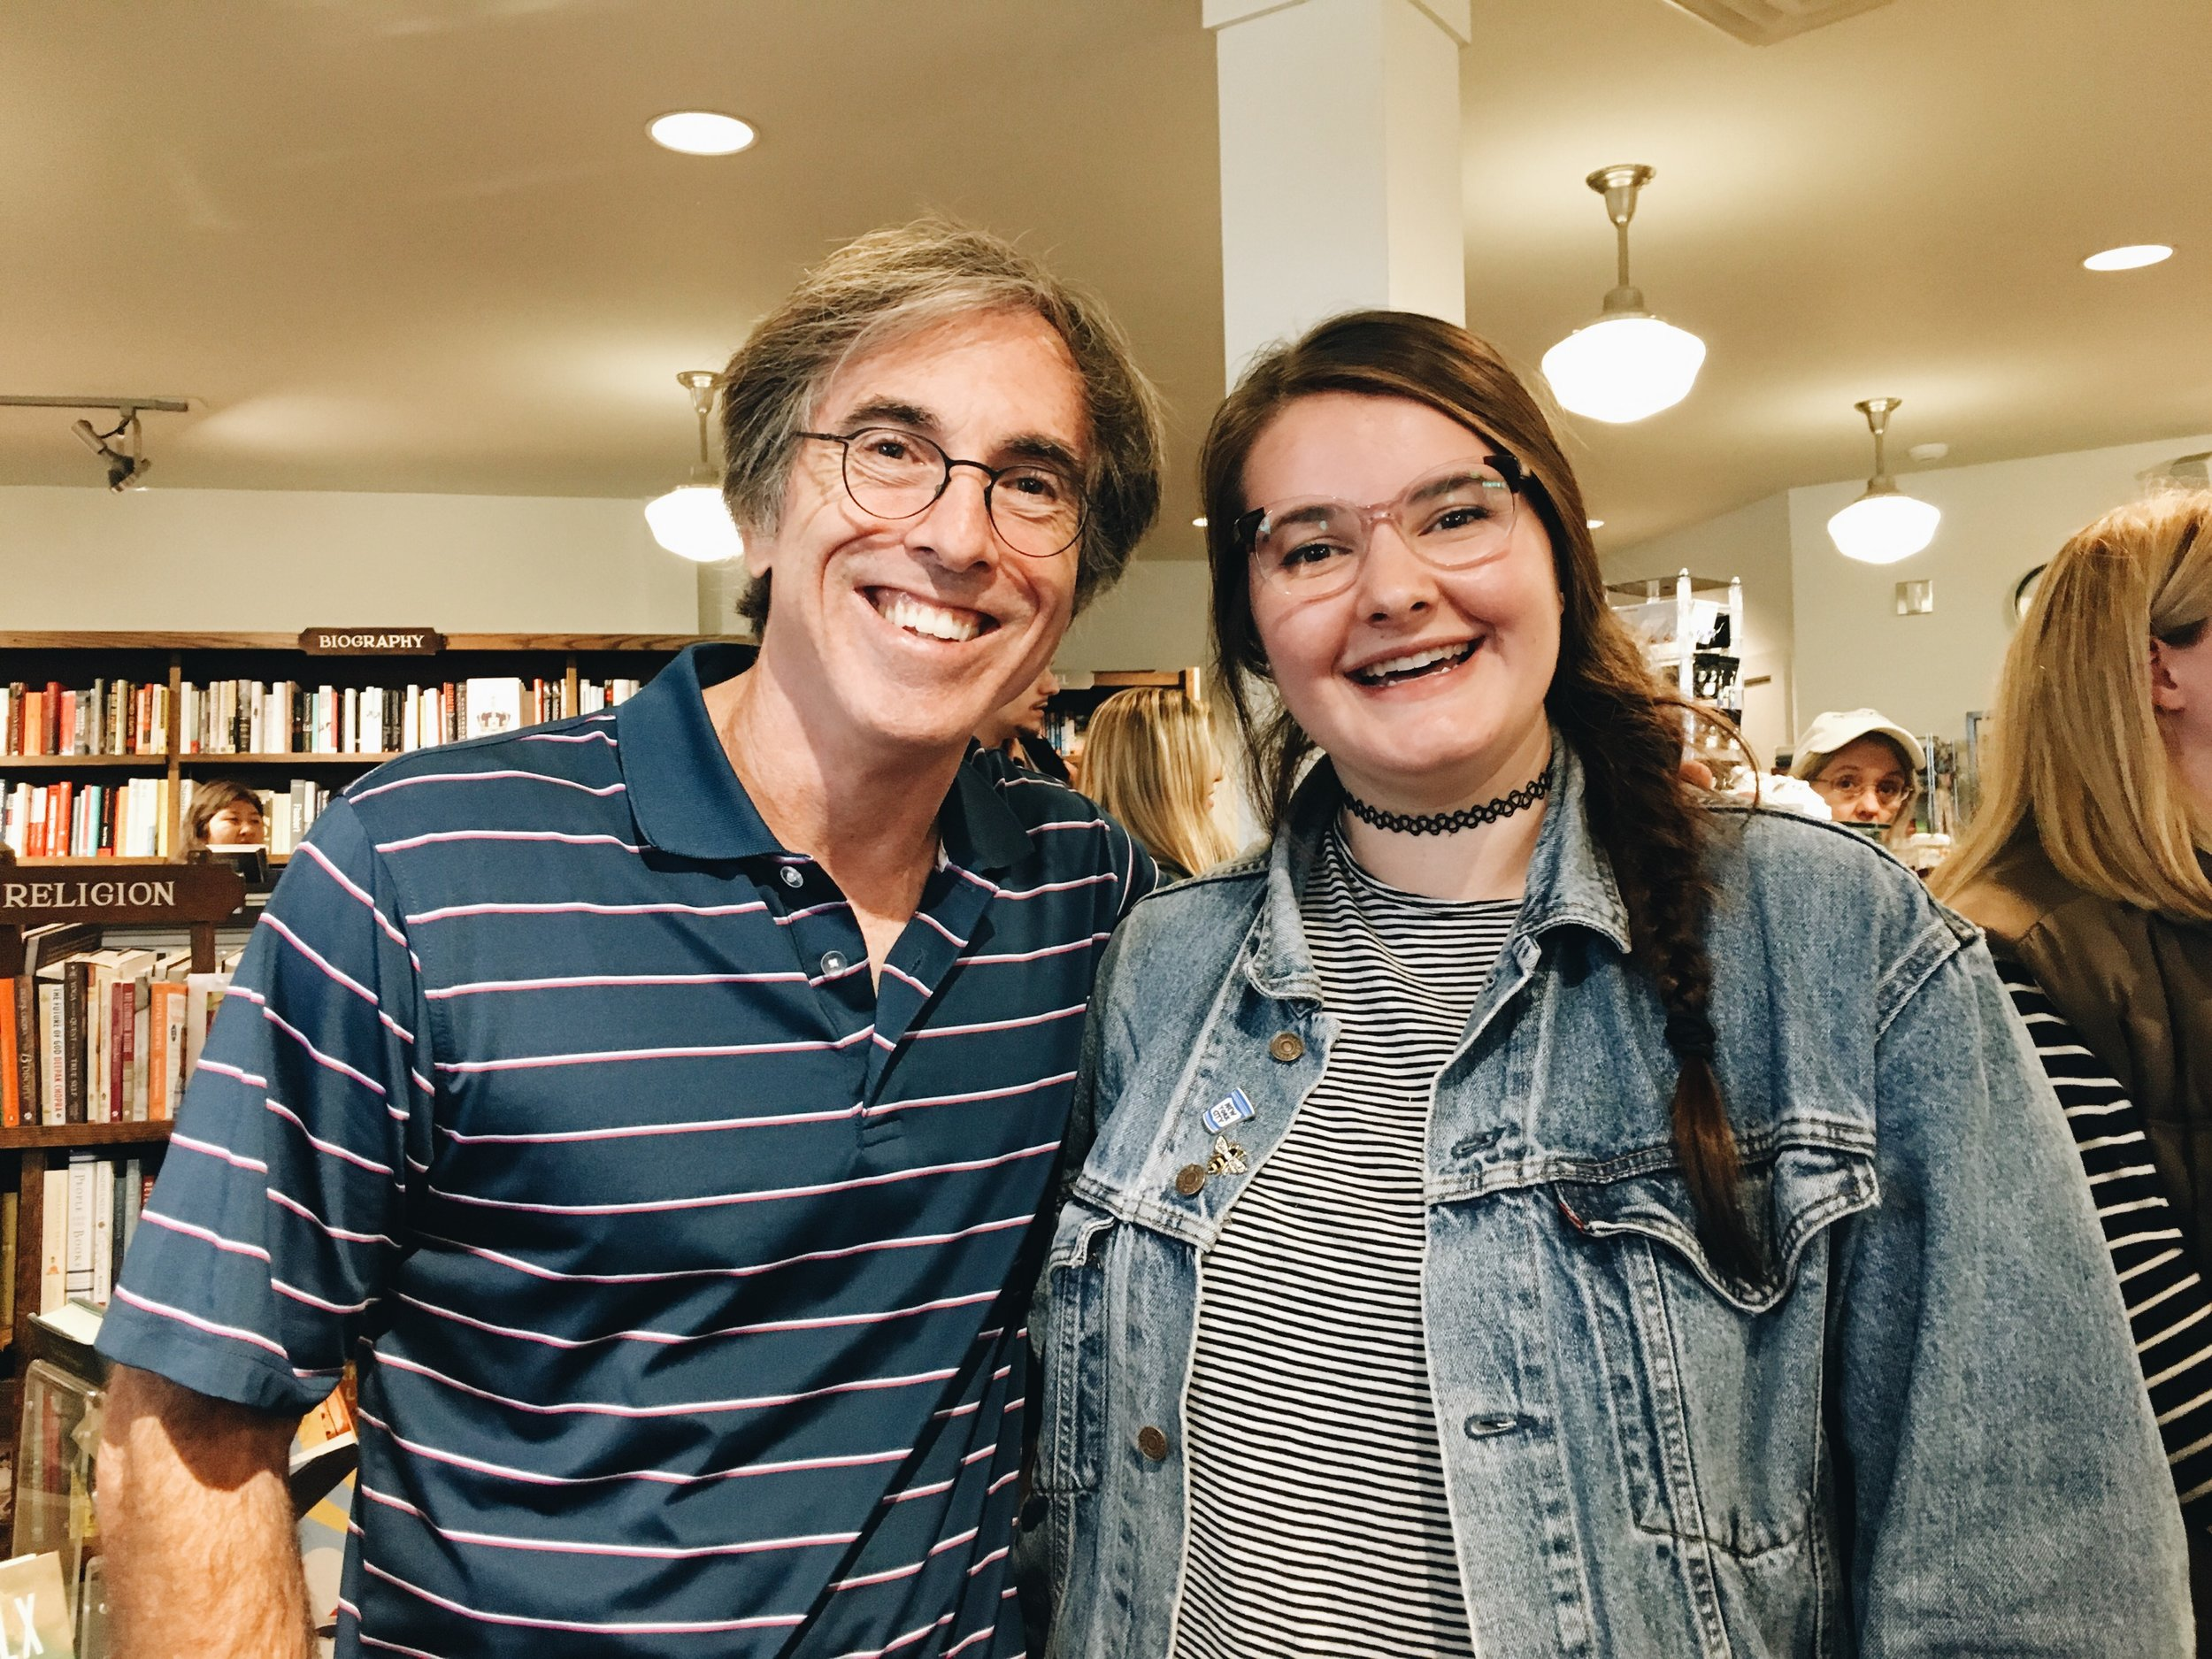 I met Andrew (Mike Gandolfi), the owner of Stars Hollow's bookstore, in Washington Depot's bookstore! Fitting!